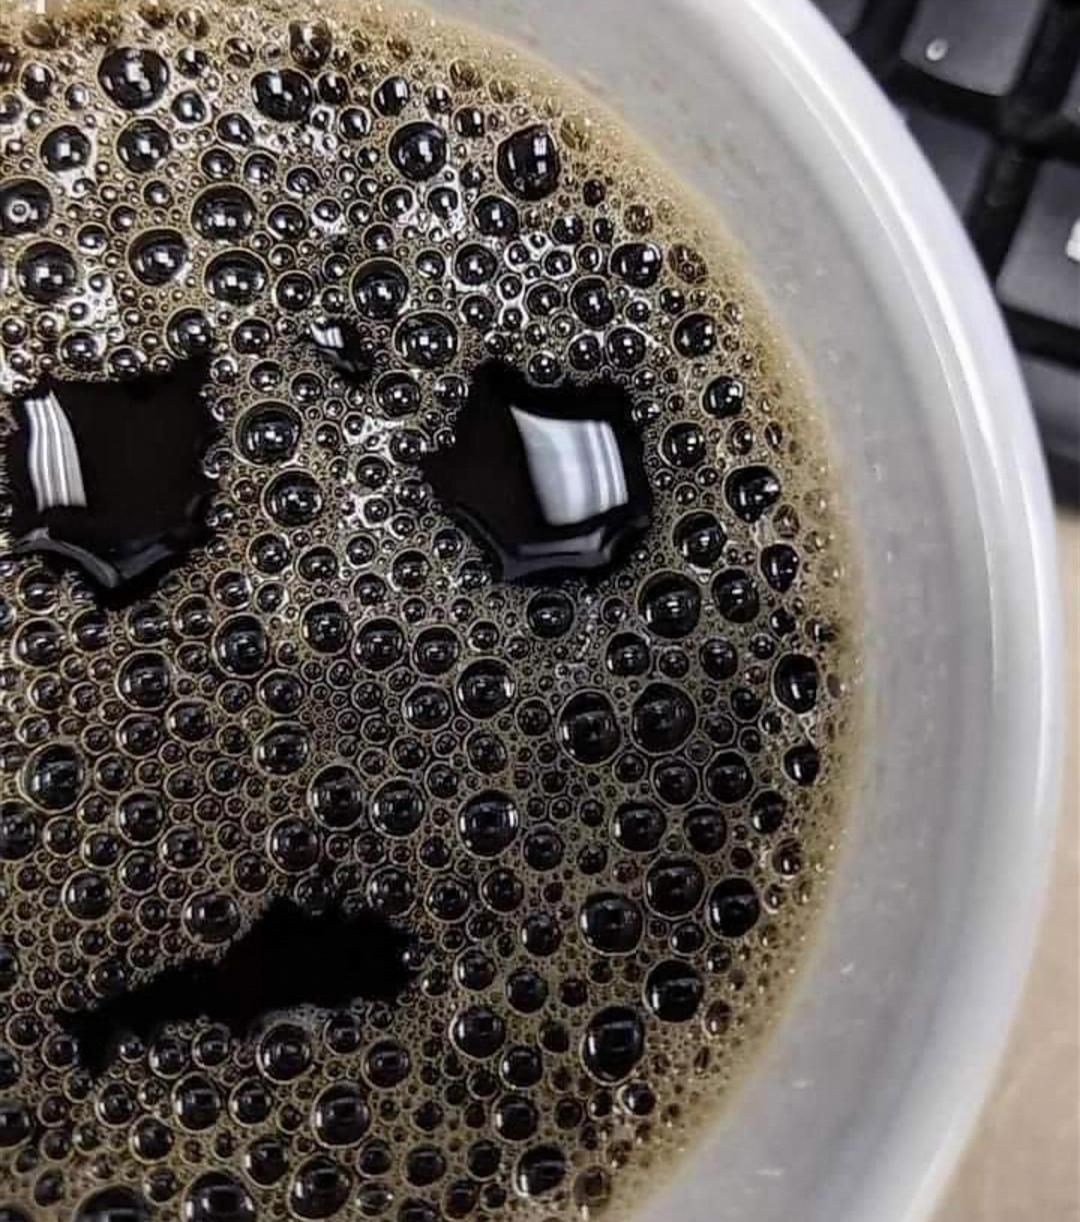 I asked for a DARK coffee, not a Depressed one